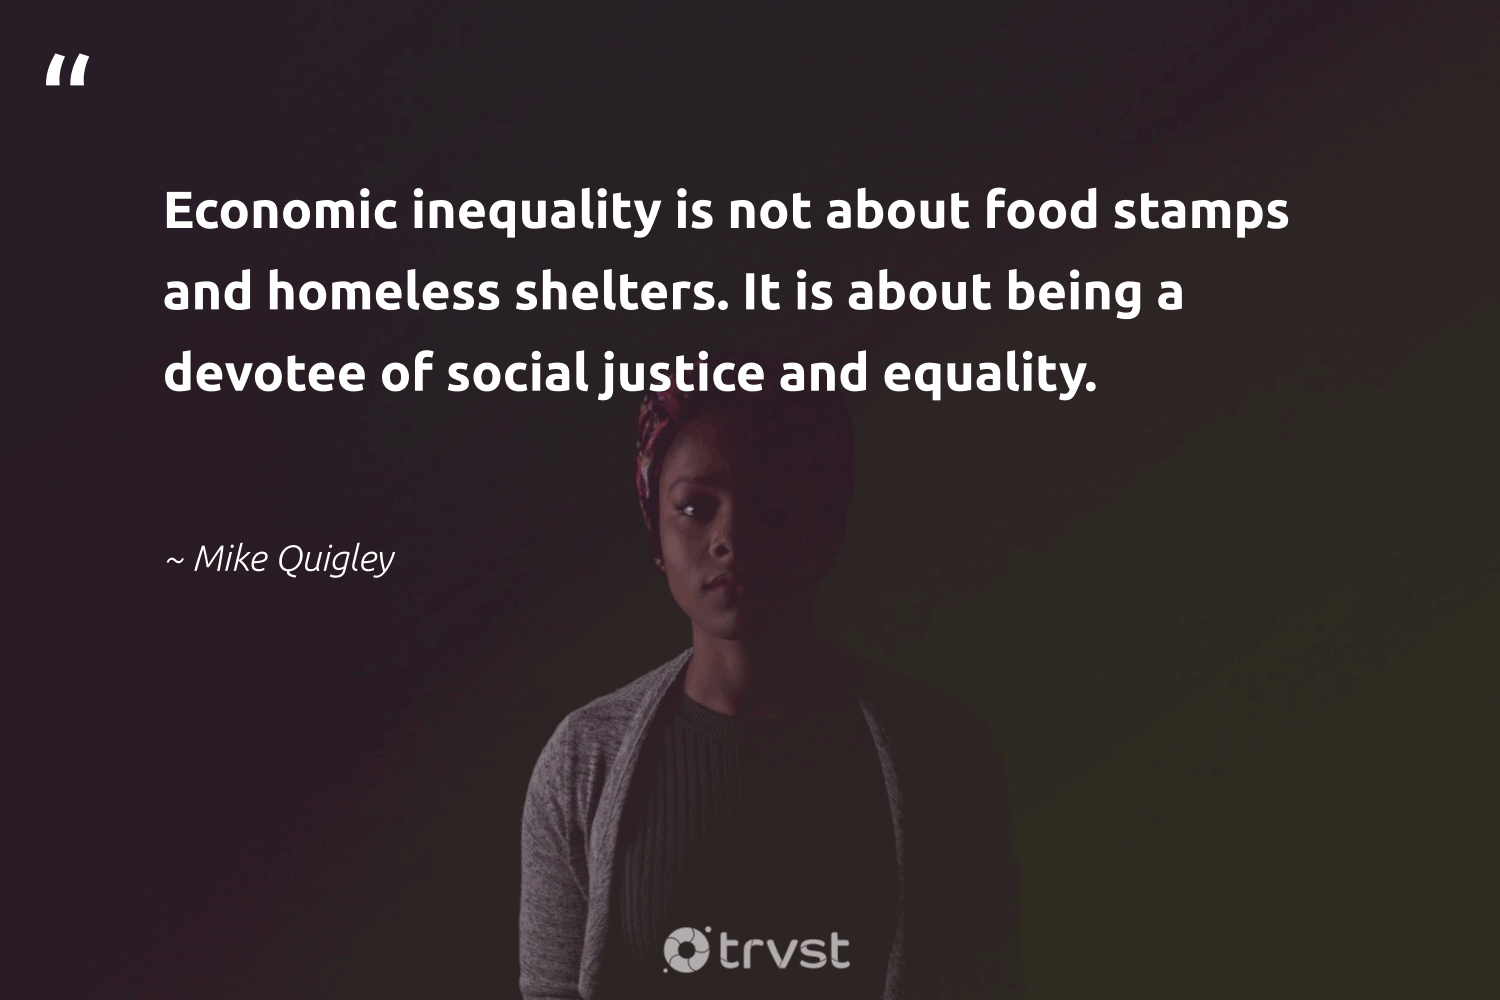 """Economic inequality is not about food stamps and homeless shelters. It is about being a devotee of social justice and equality.""  - Mike Quigley #trvst #quotes #equality #justice #socialjustice #homeless #food #standup #socialgood #weareallone #dotherightthing #equalrights"